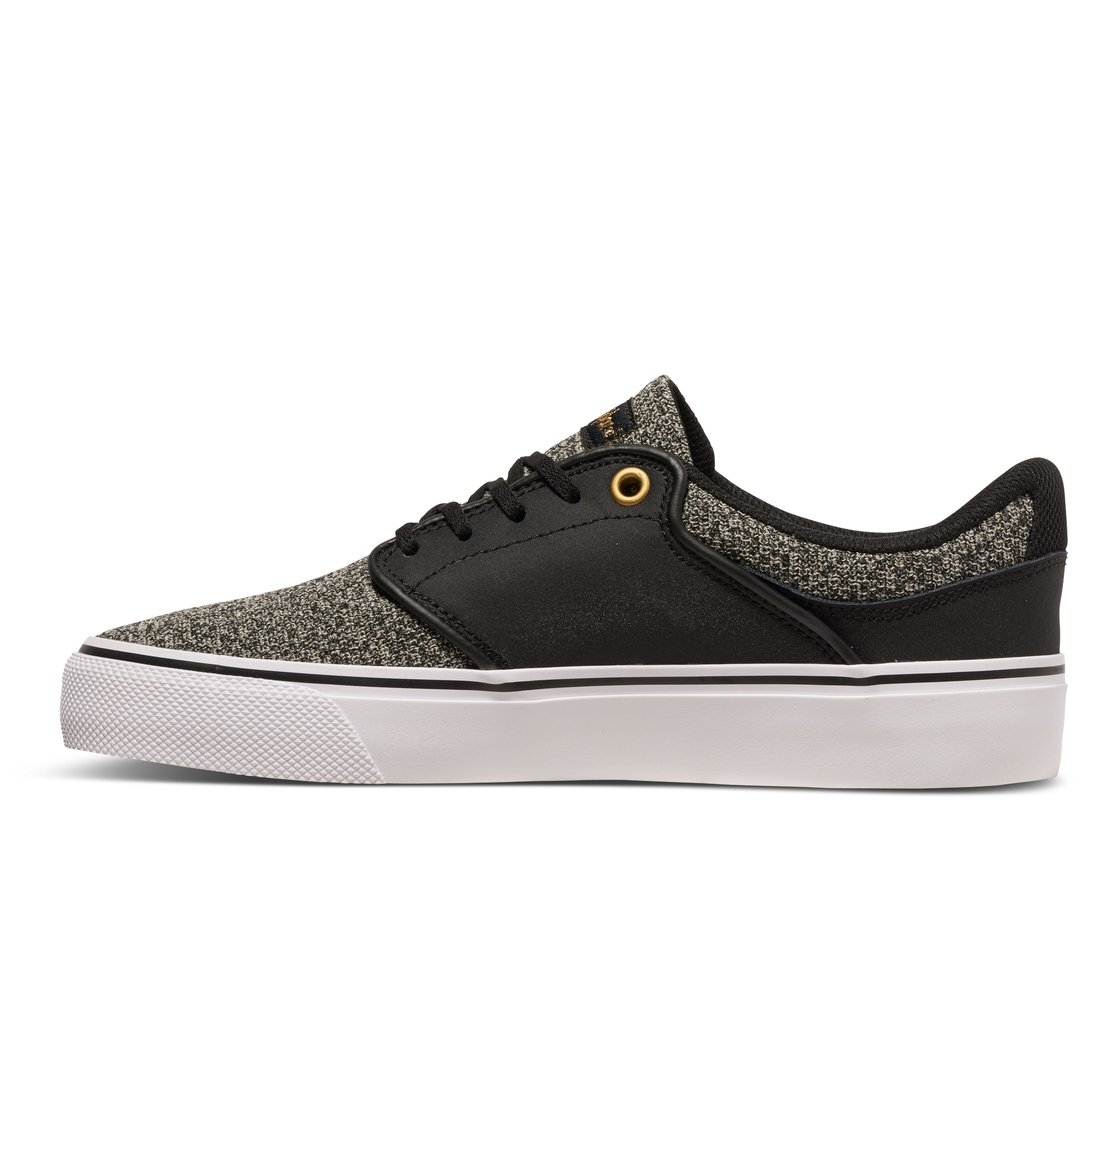 Baskets DC shoes Mikey Taylor nzKTeoZ